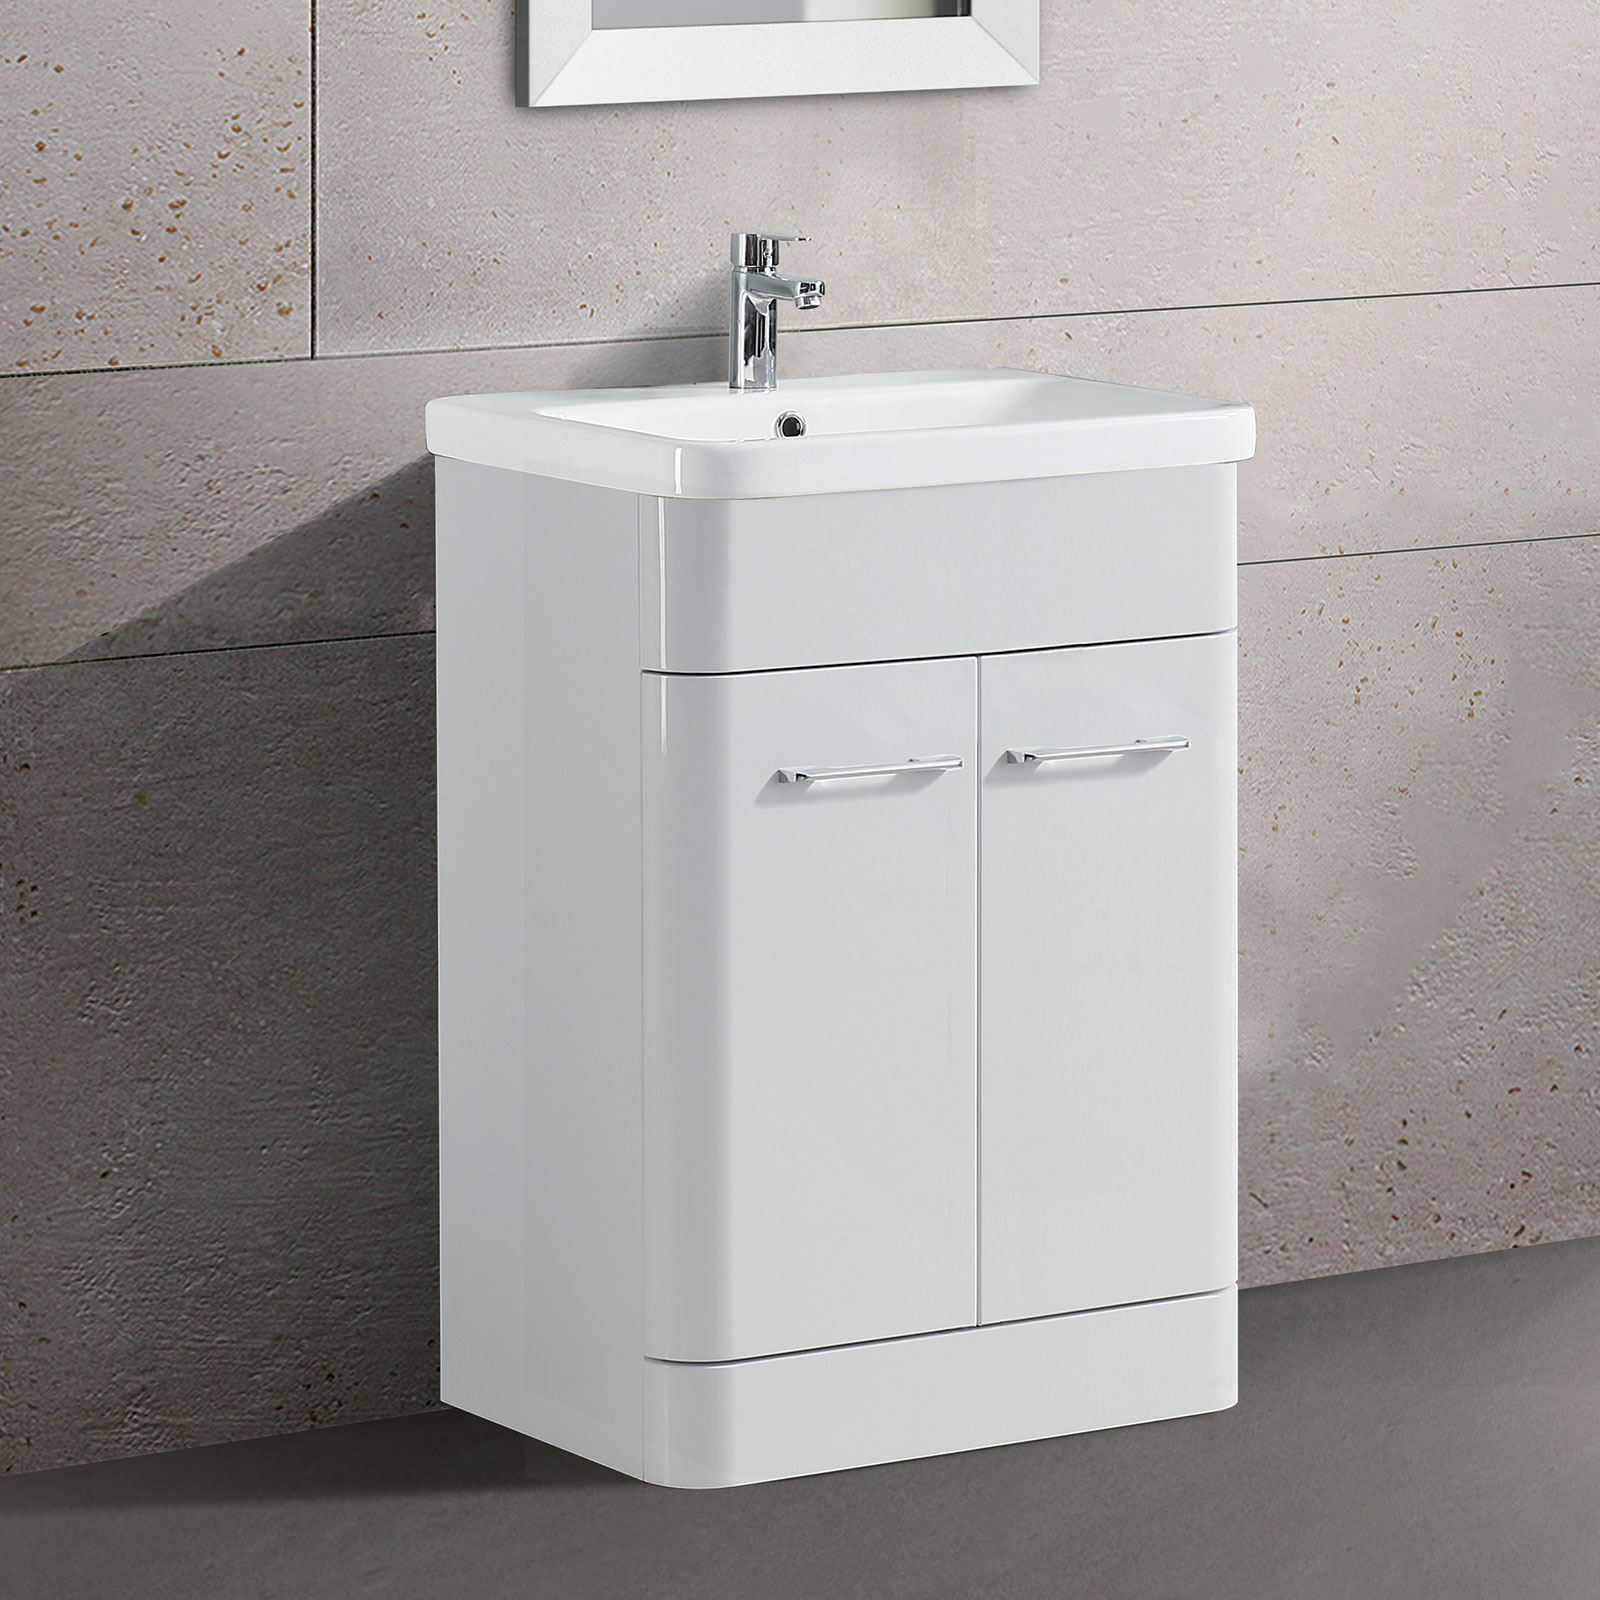 white gloss bathroom unit lorey freestanding bathroom vanity unit ceramic basin 21543